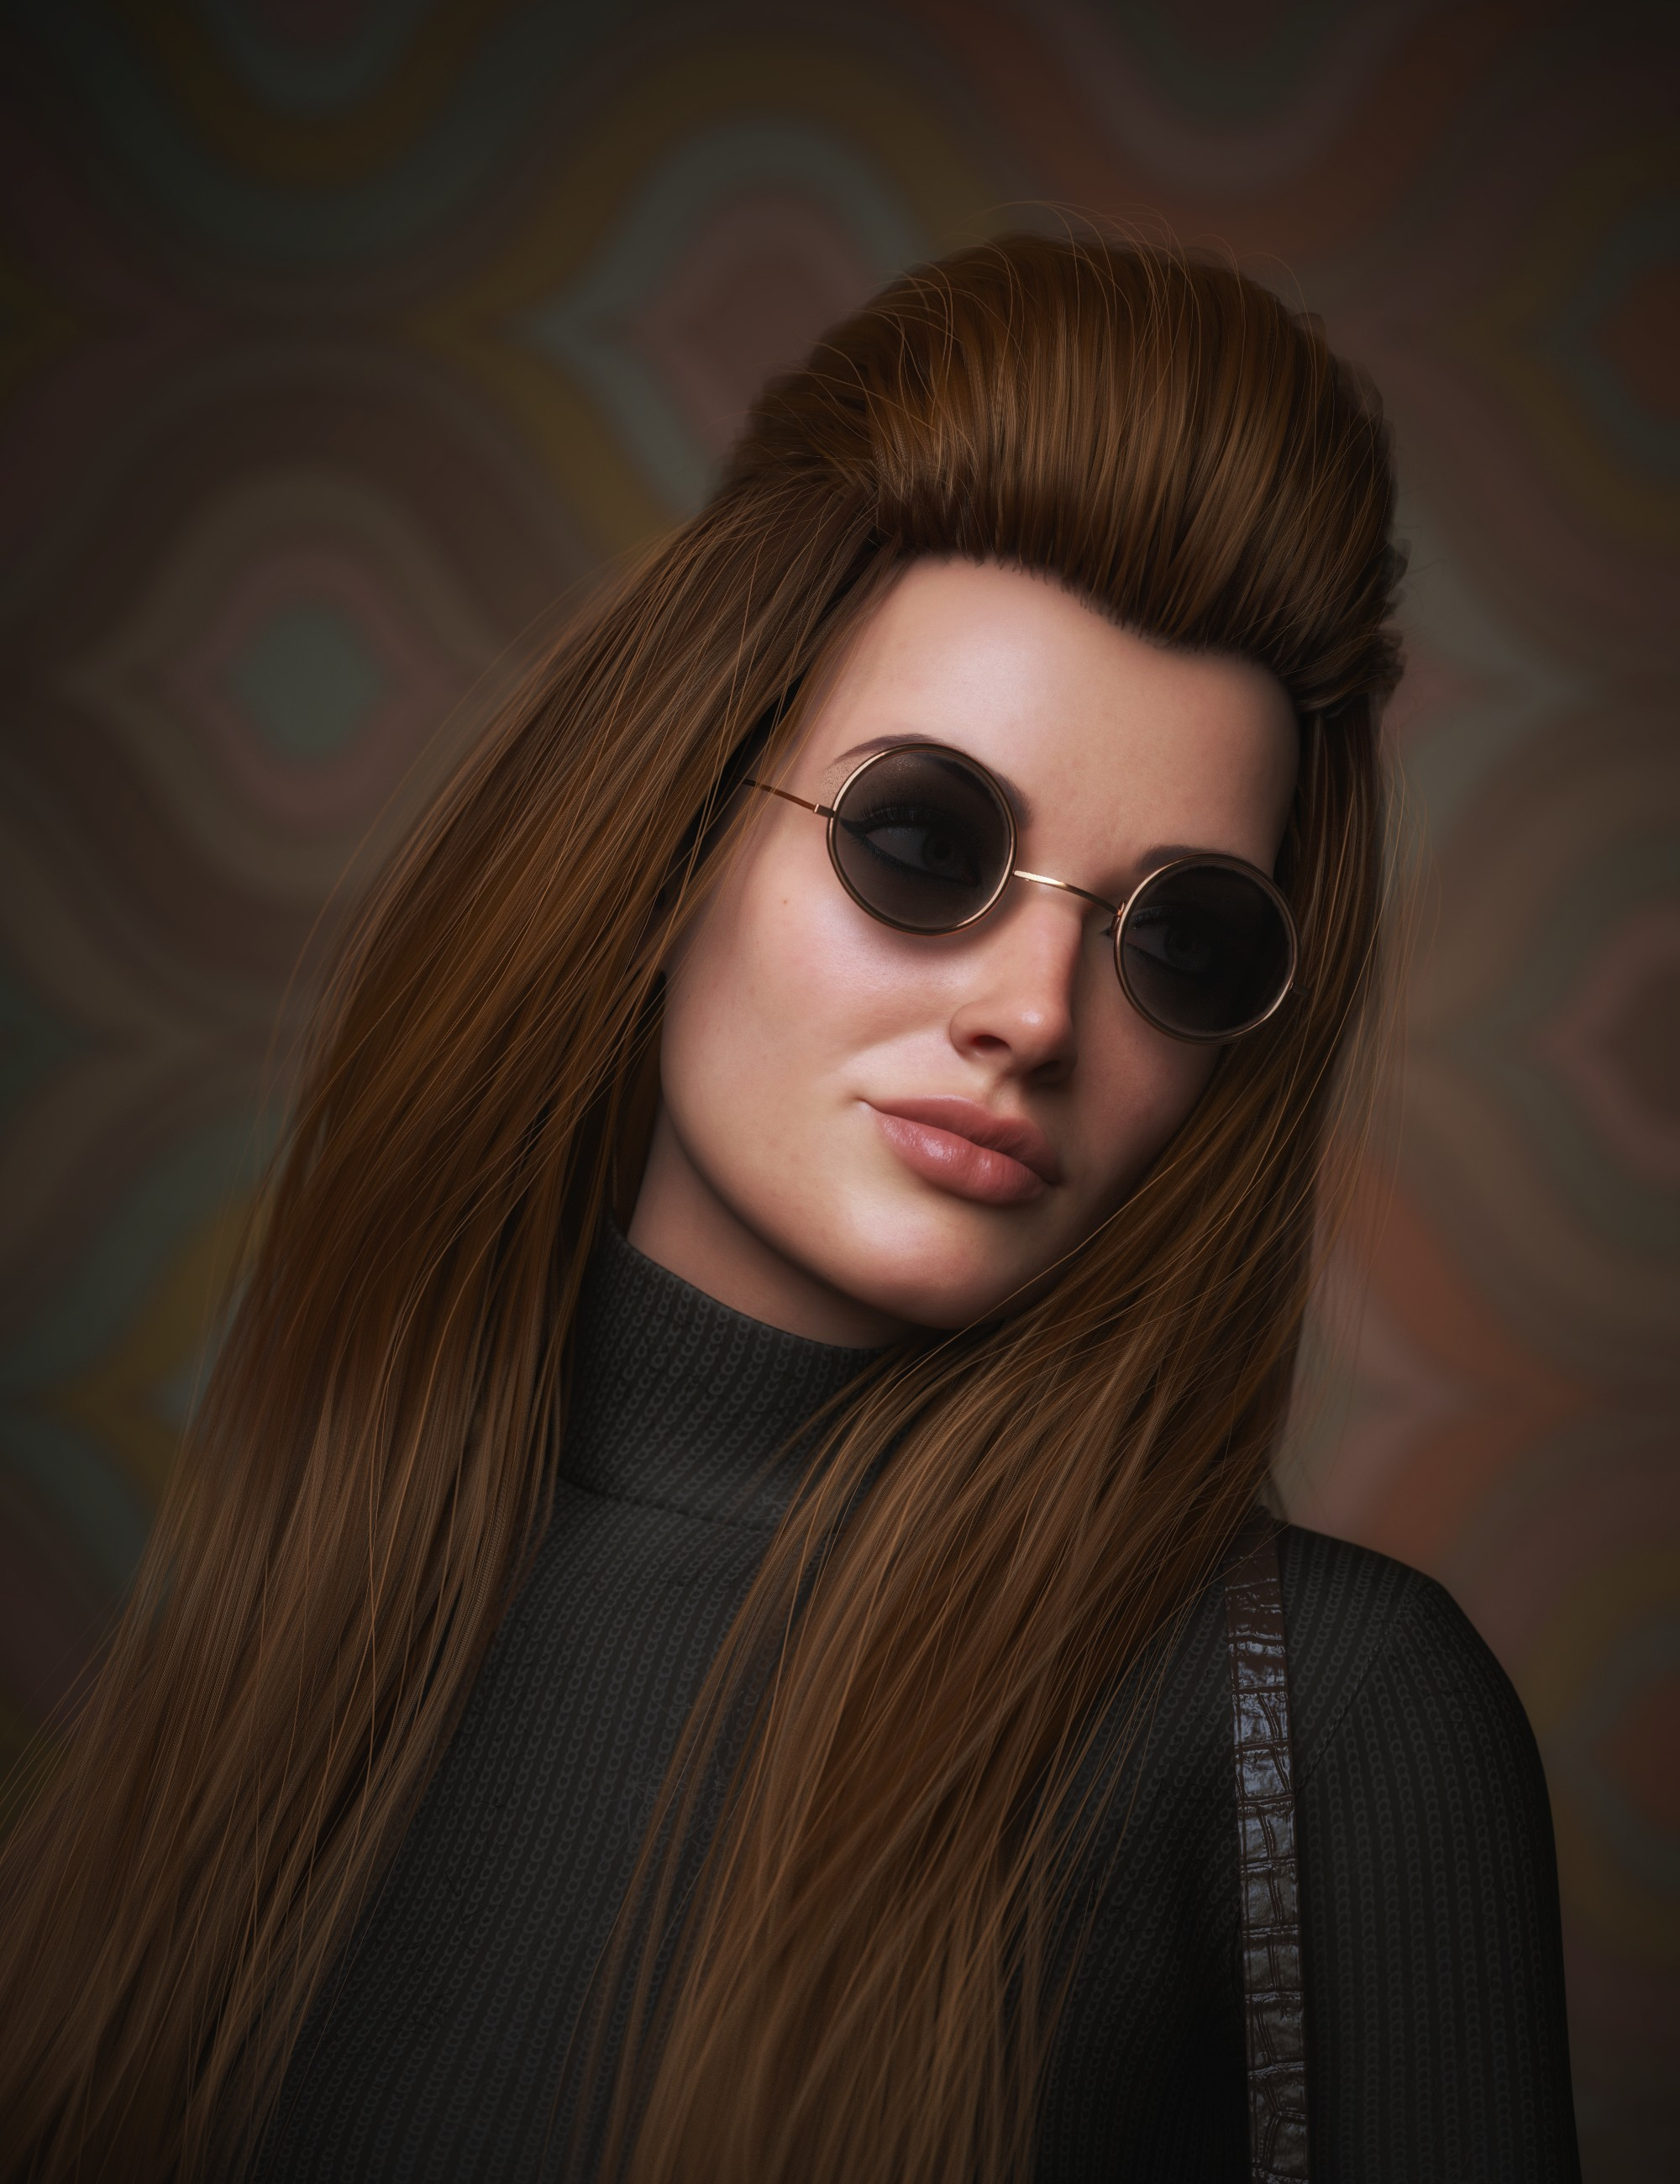 Long Bump Hair for Genesis 3, 8, and 8.1 Females by: Soto, 3D Models by Daz 3D